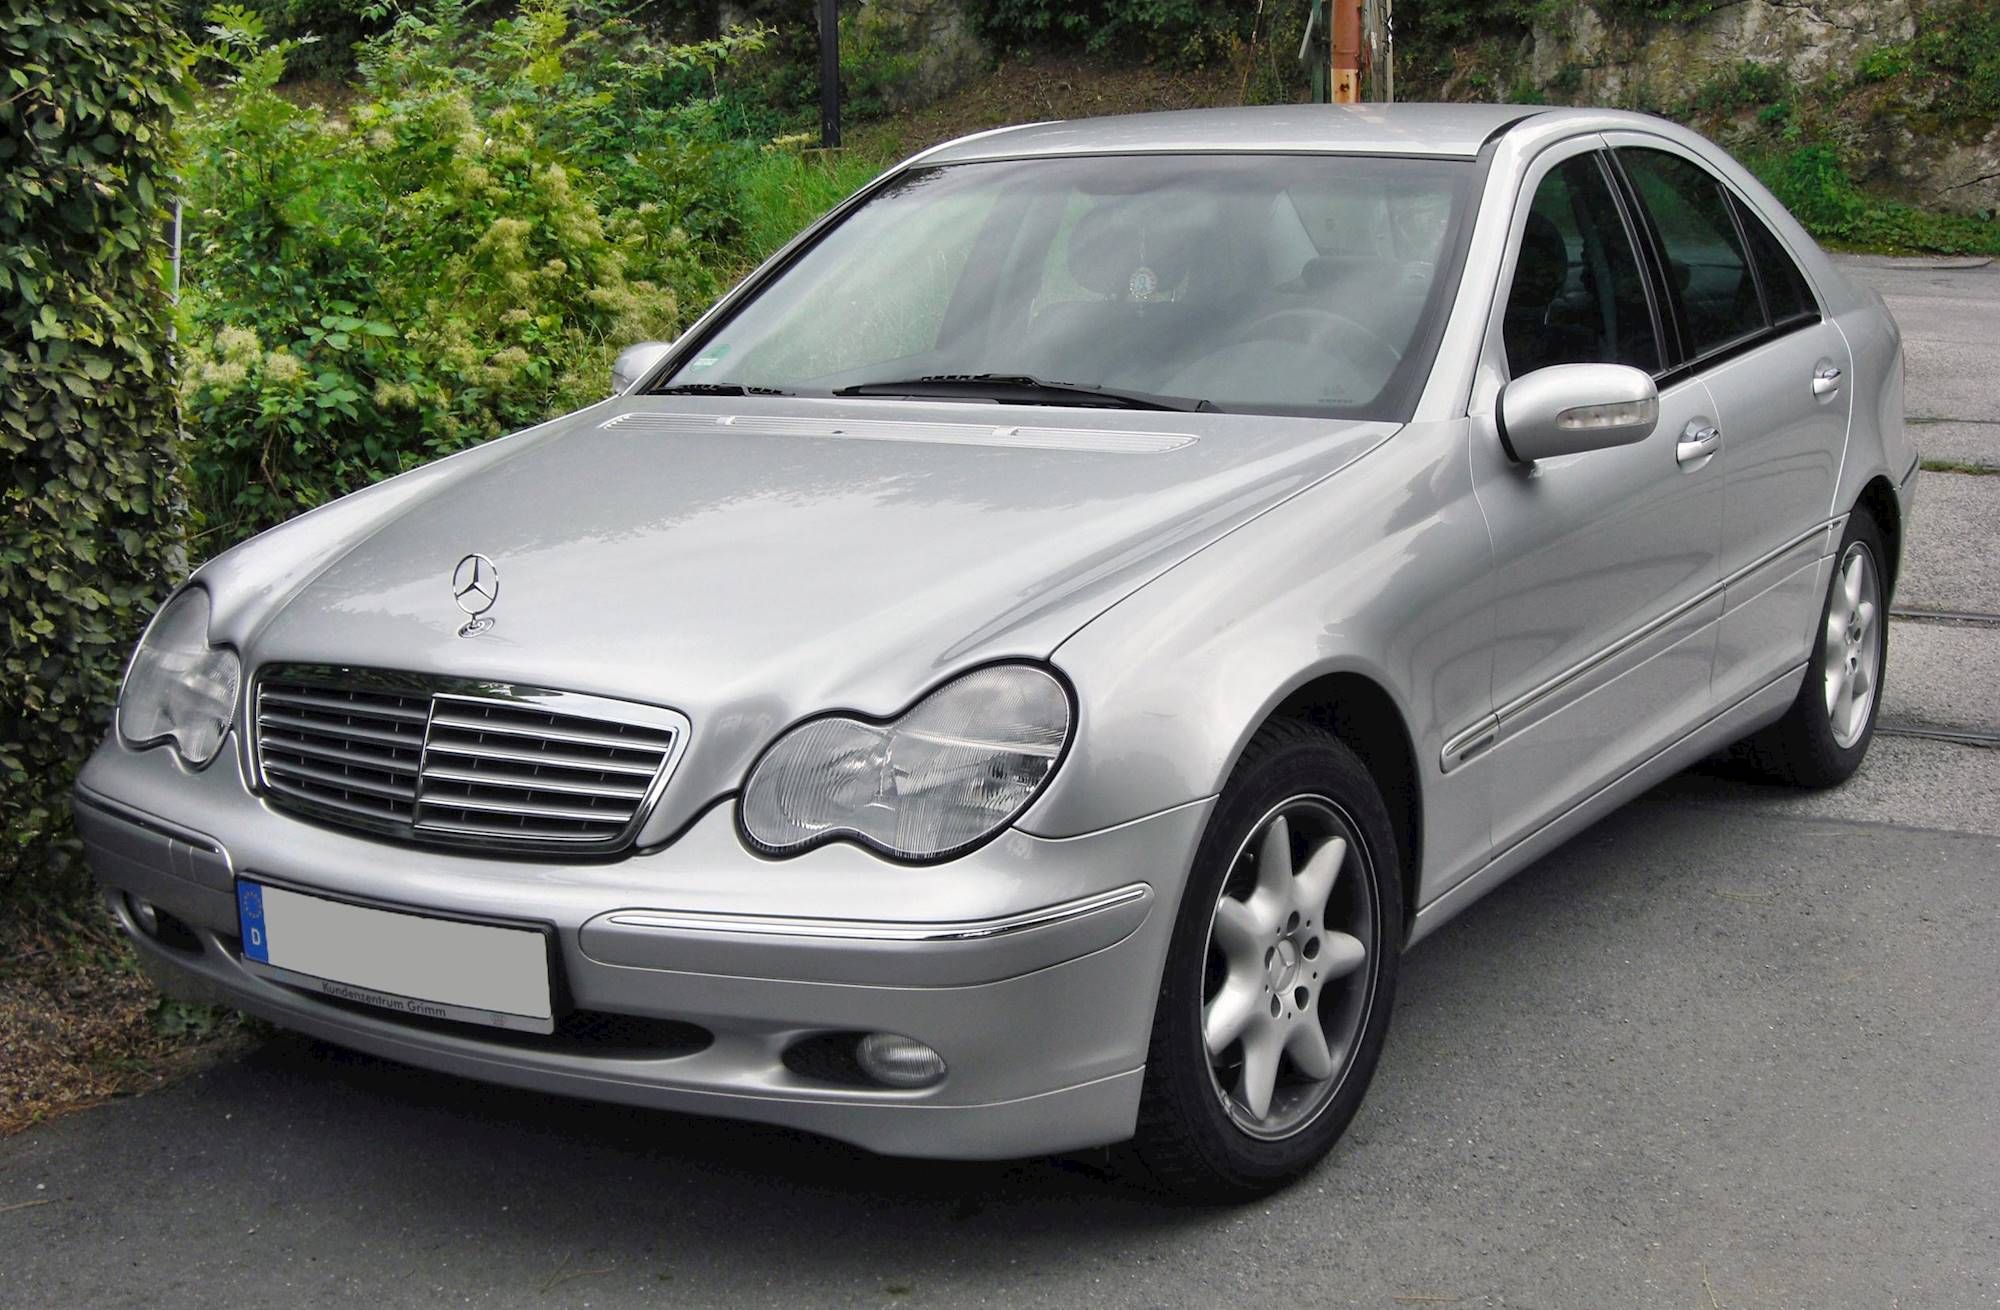 2005 Mercedes Benz C230 Kompressor Sport 4dr Sedan 6 Spd Manual W Od